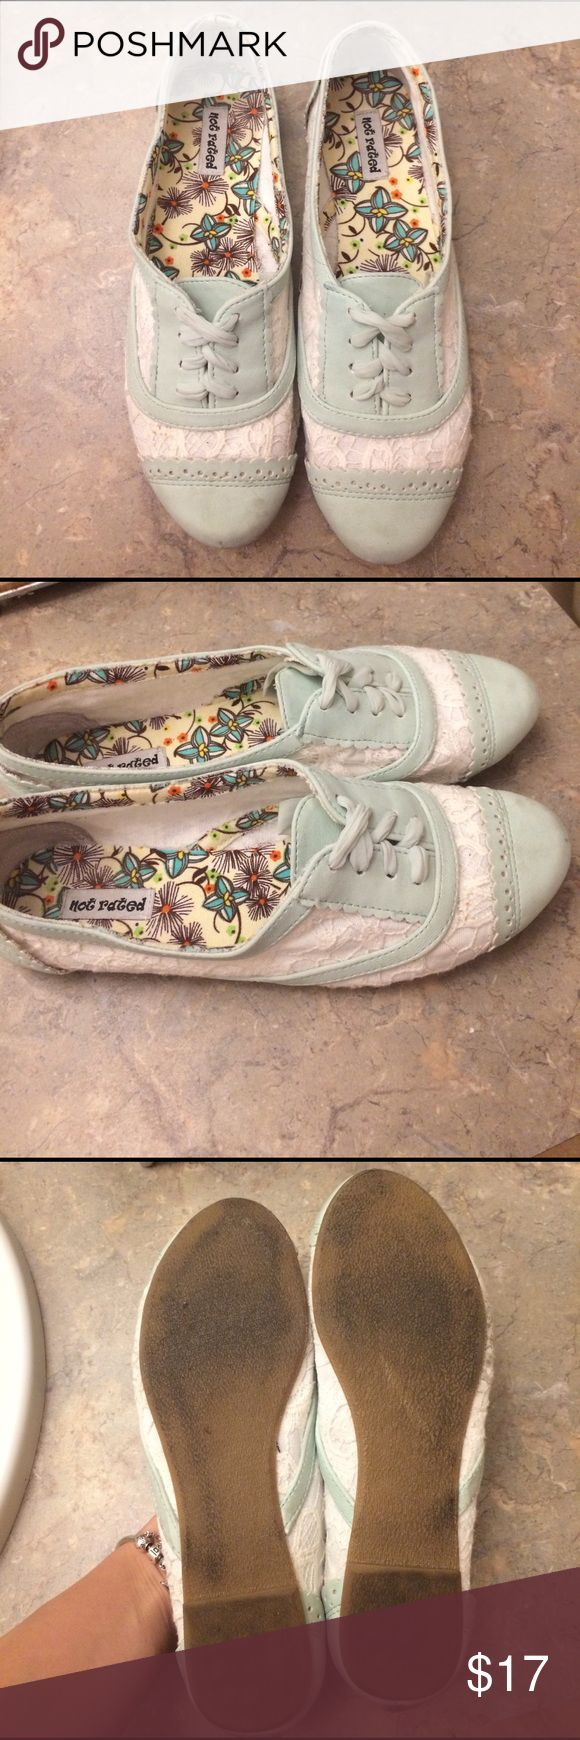 💙Not rated teal closed flats size 8.5💙 Not rated closed flats size 8, gently used. Mint color with white lace. cute and comfortable. Will ship ASAP if purchased! Not Rated Shoes Flats & Loafers